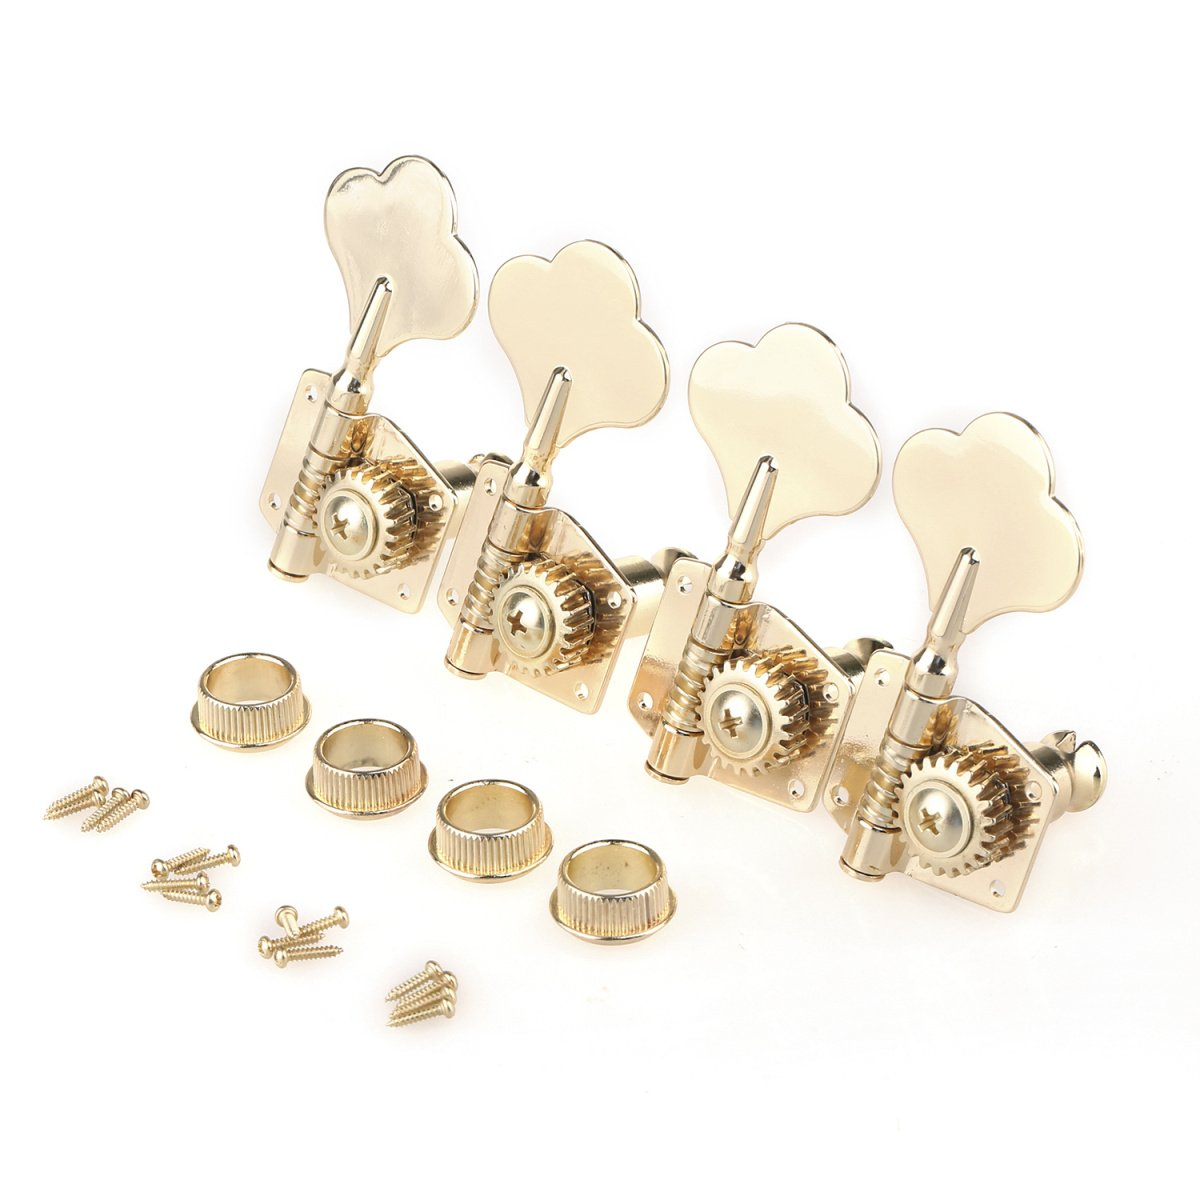 Musiclily Pro 4 in line Open Gear String Machine Heads Tuning Pegs Keys Tuners Set for Precision Jazz Bass Right Hand, Gold MX1360GD-4